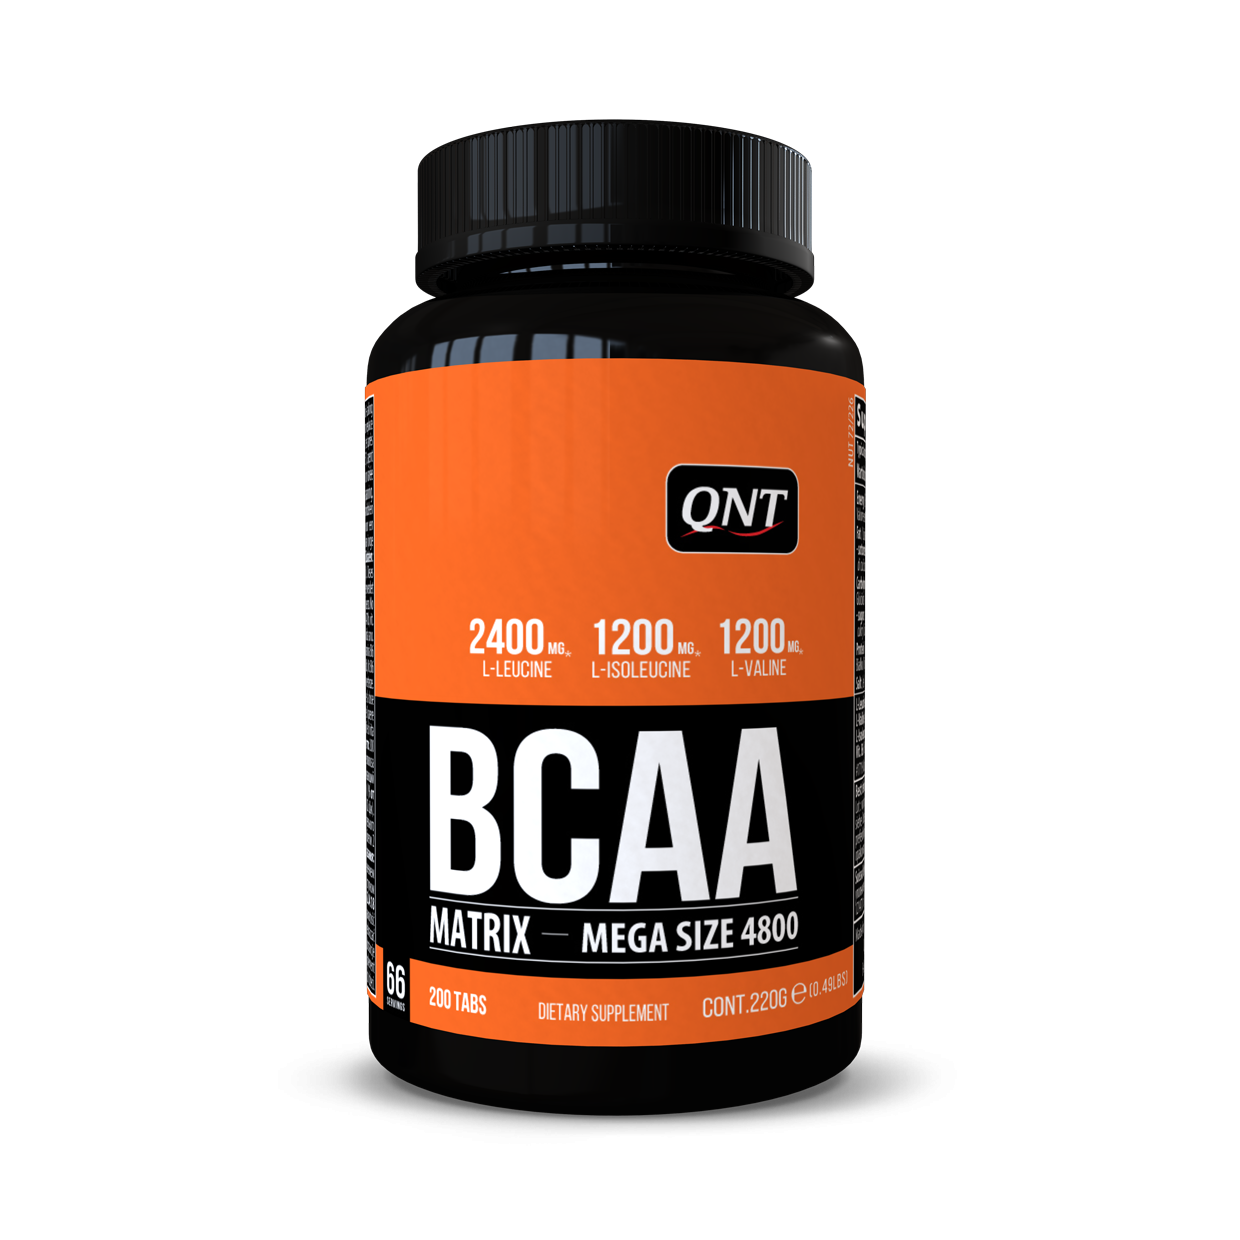 Matrix BCAA 4800 QNT